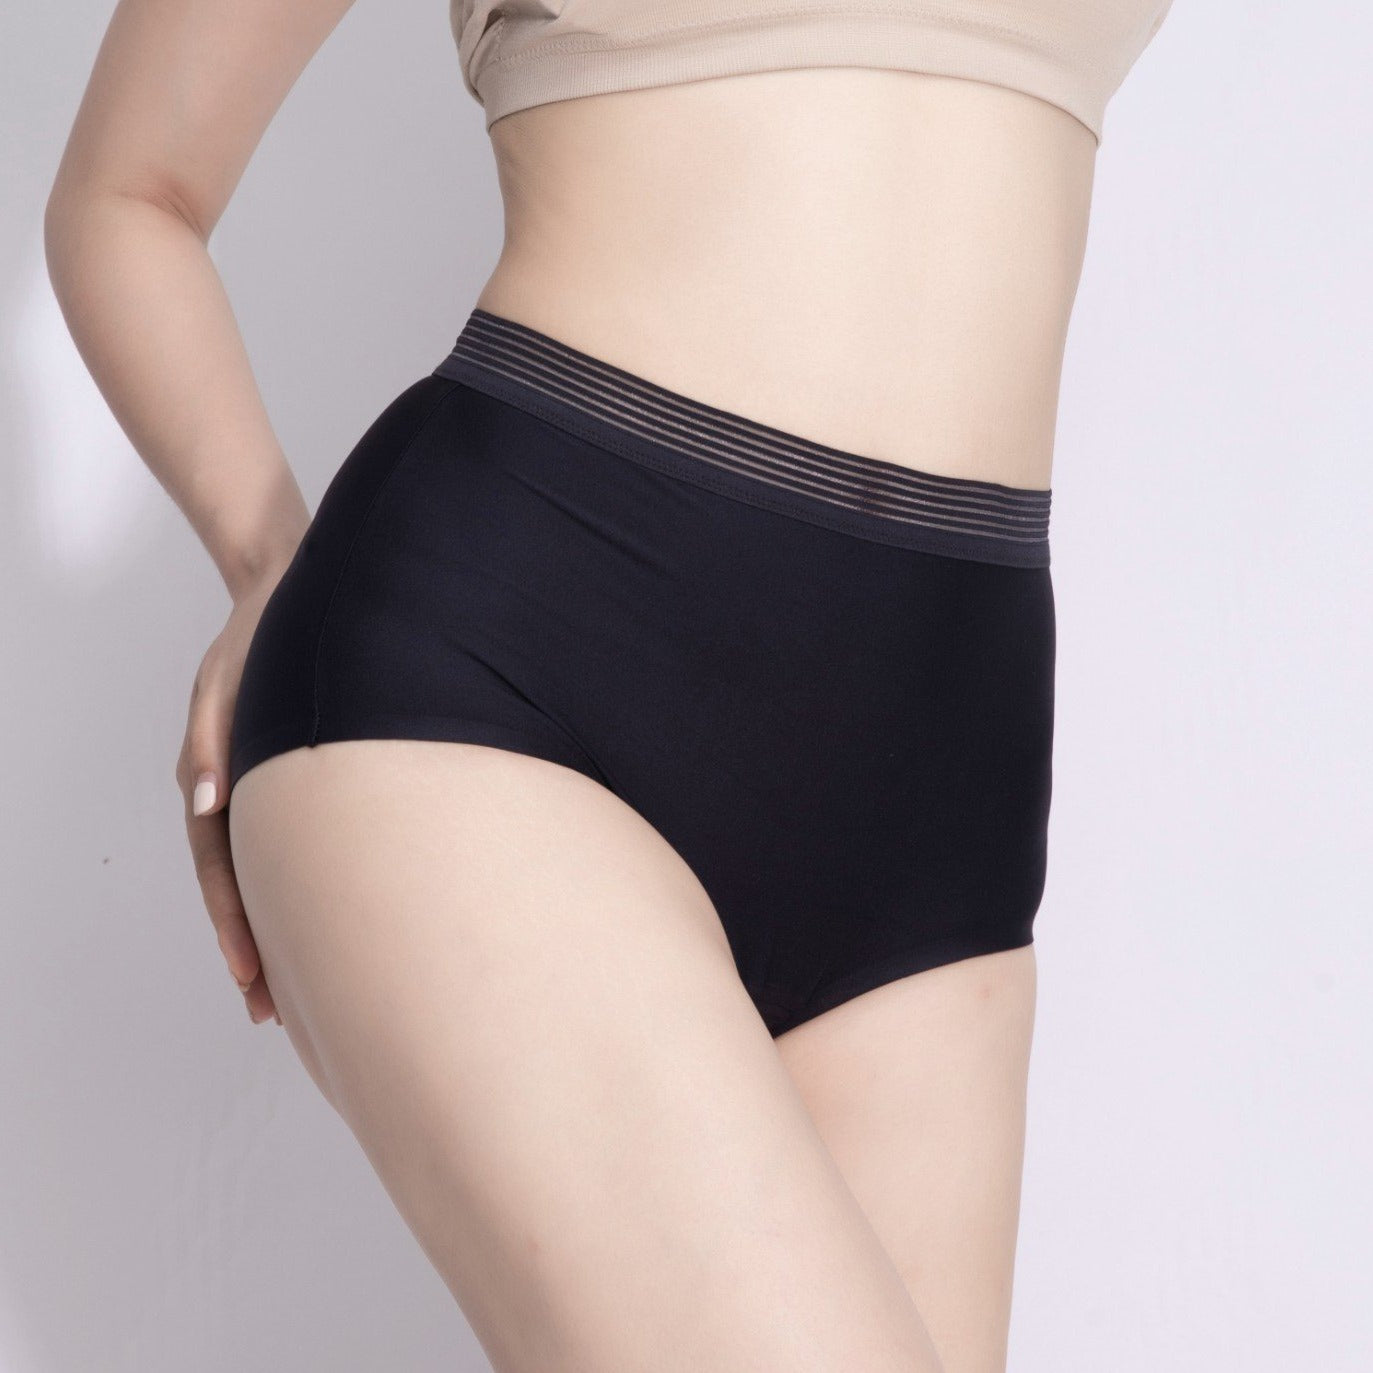 High Waisted Brief underwear leakproof incontinence underwear period underwear